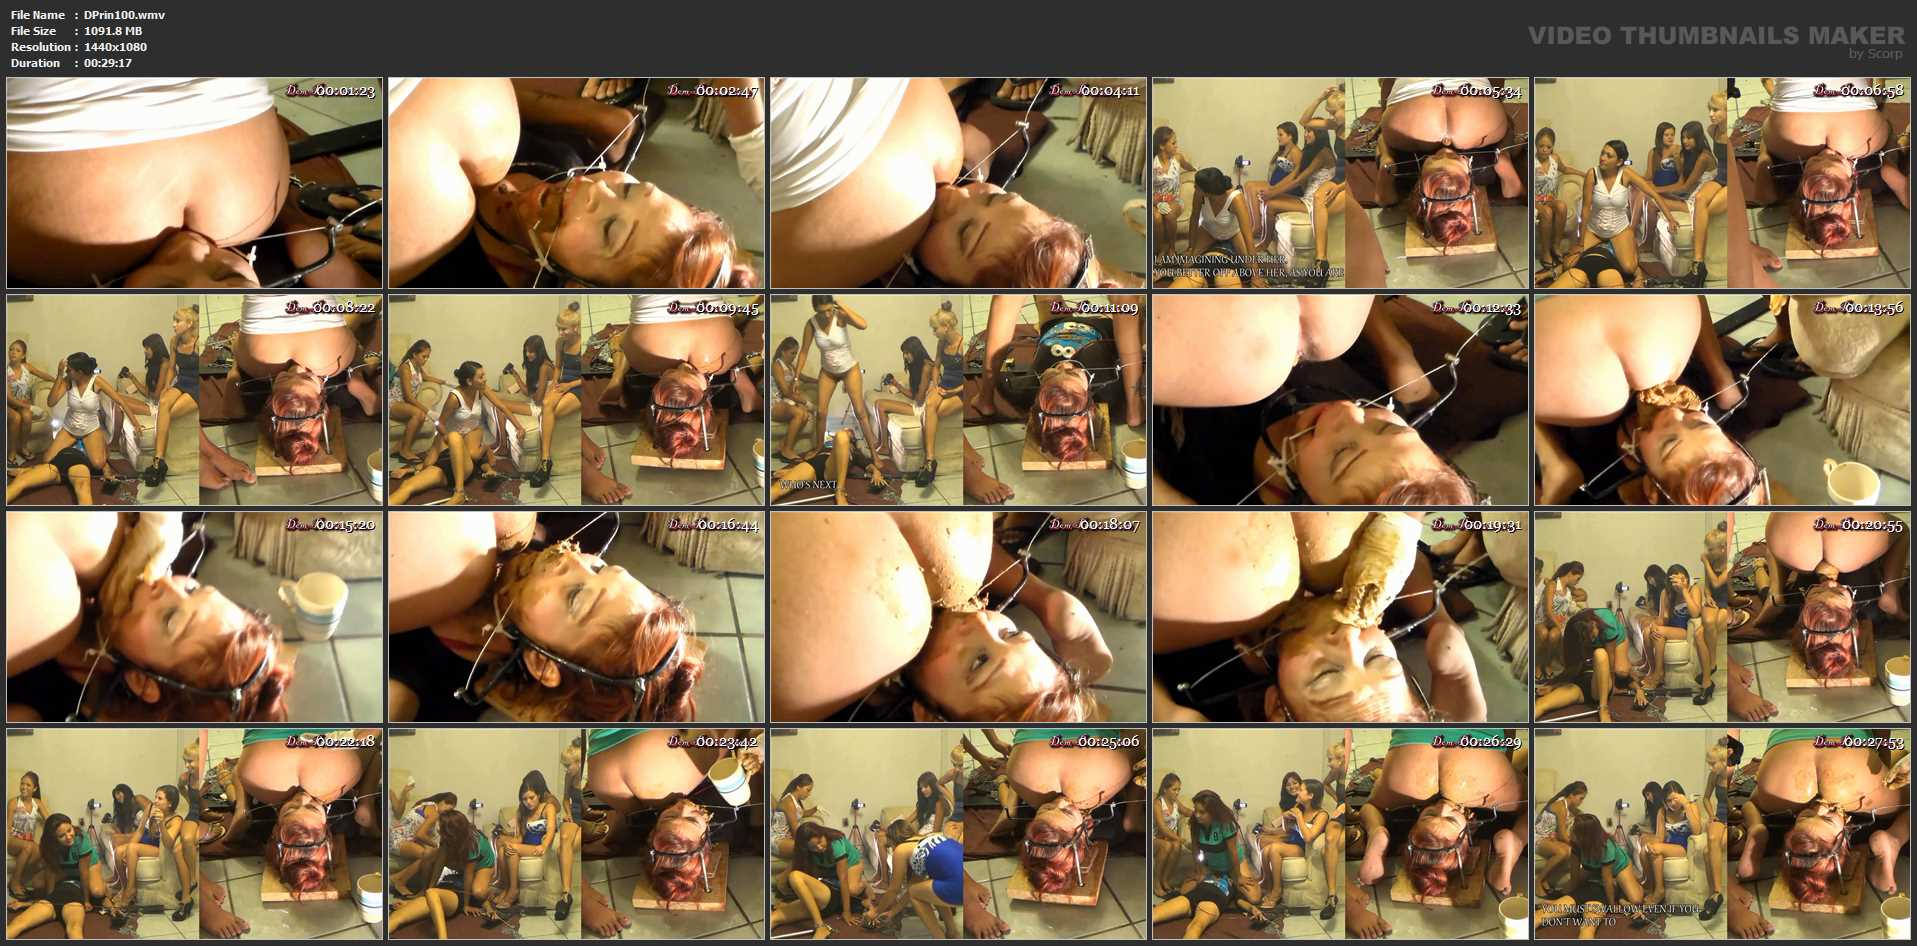 [DOM-PRINCESS] First Time Ever Girl as Slave [FULL HD][1080p][WMV]